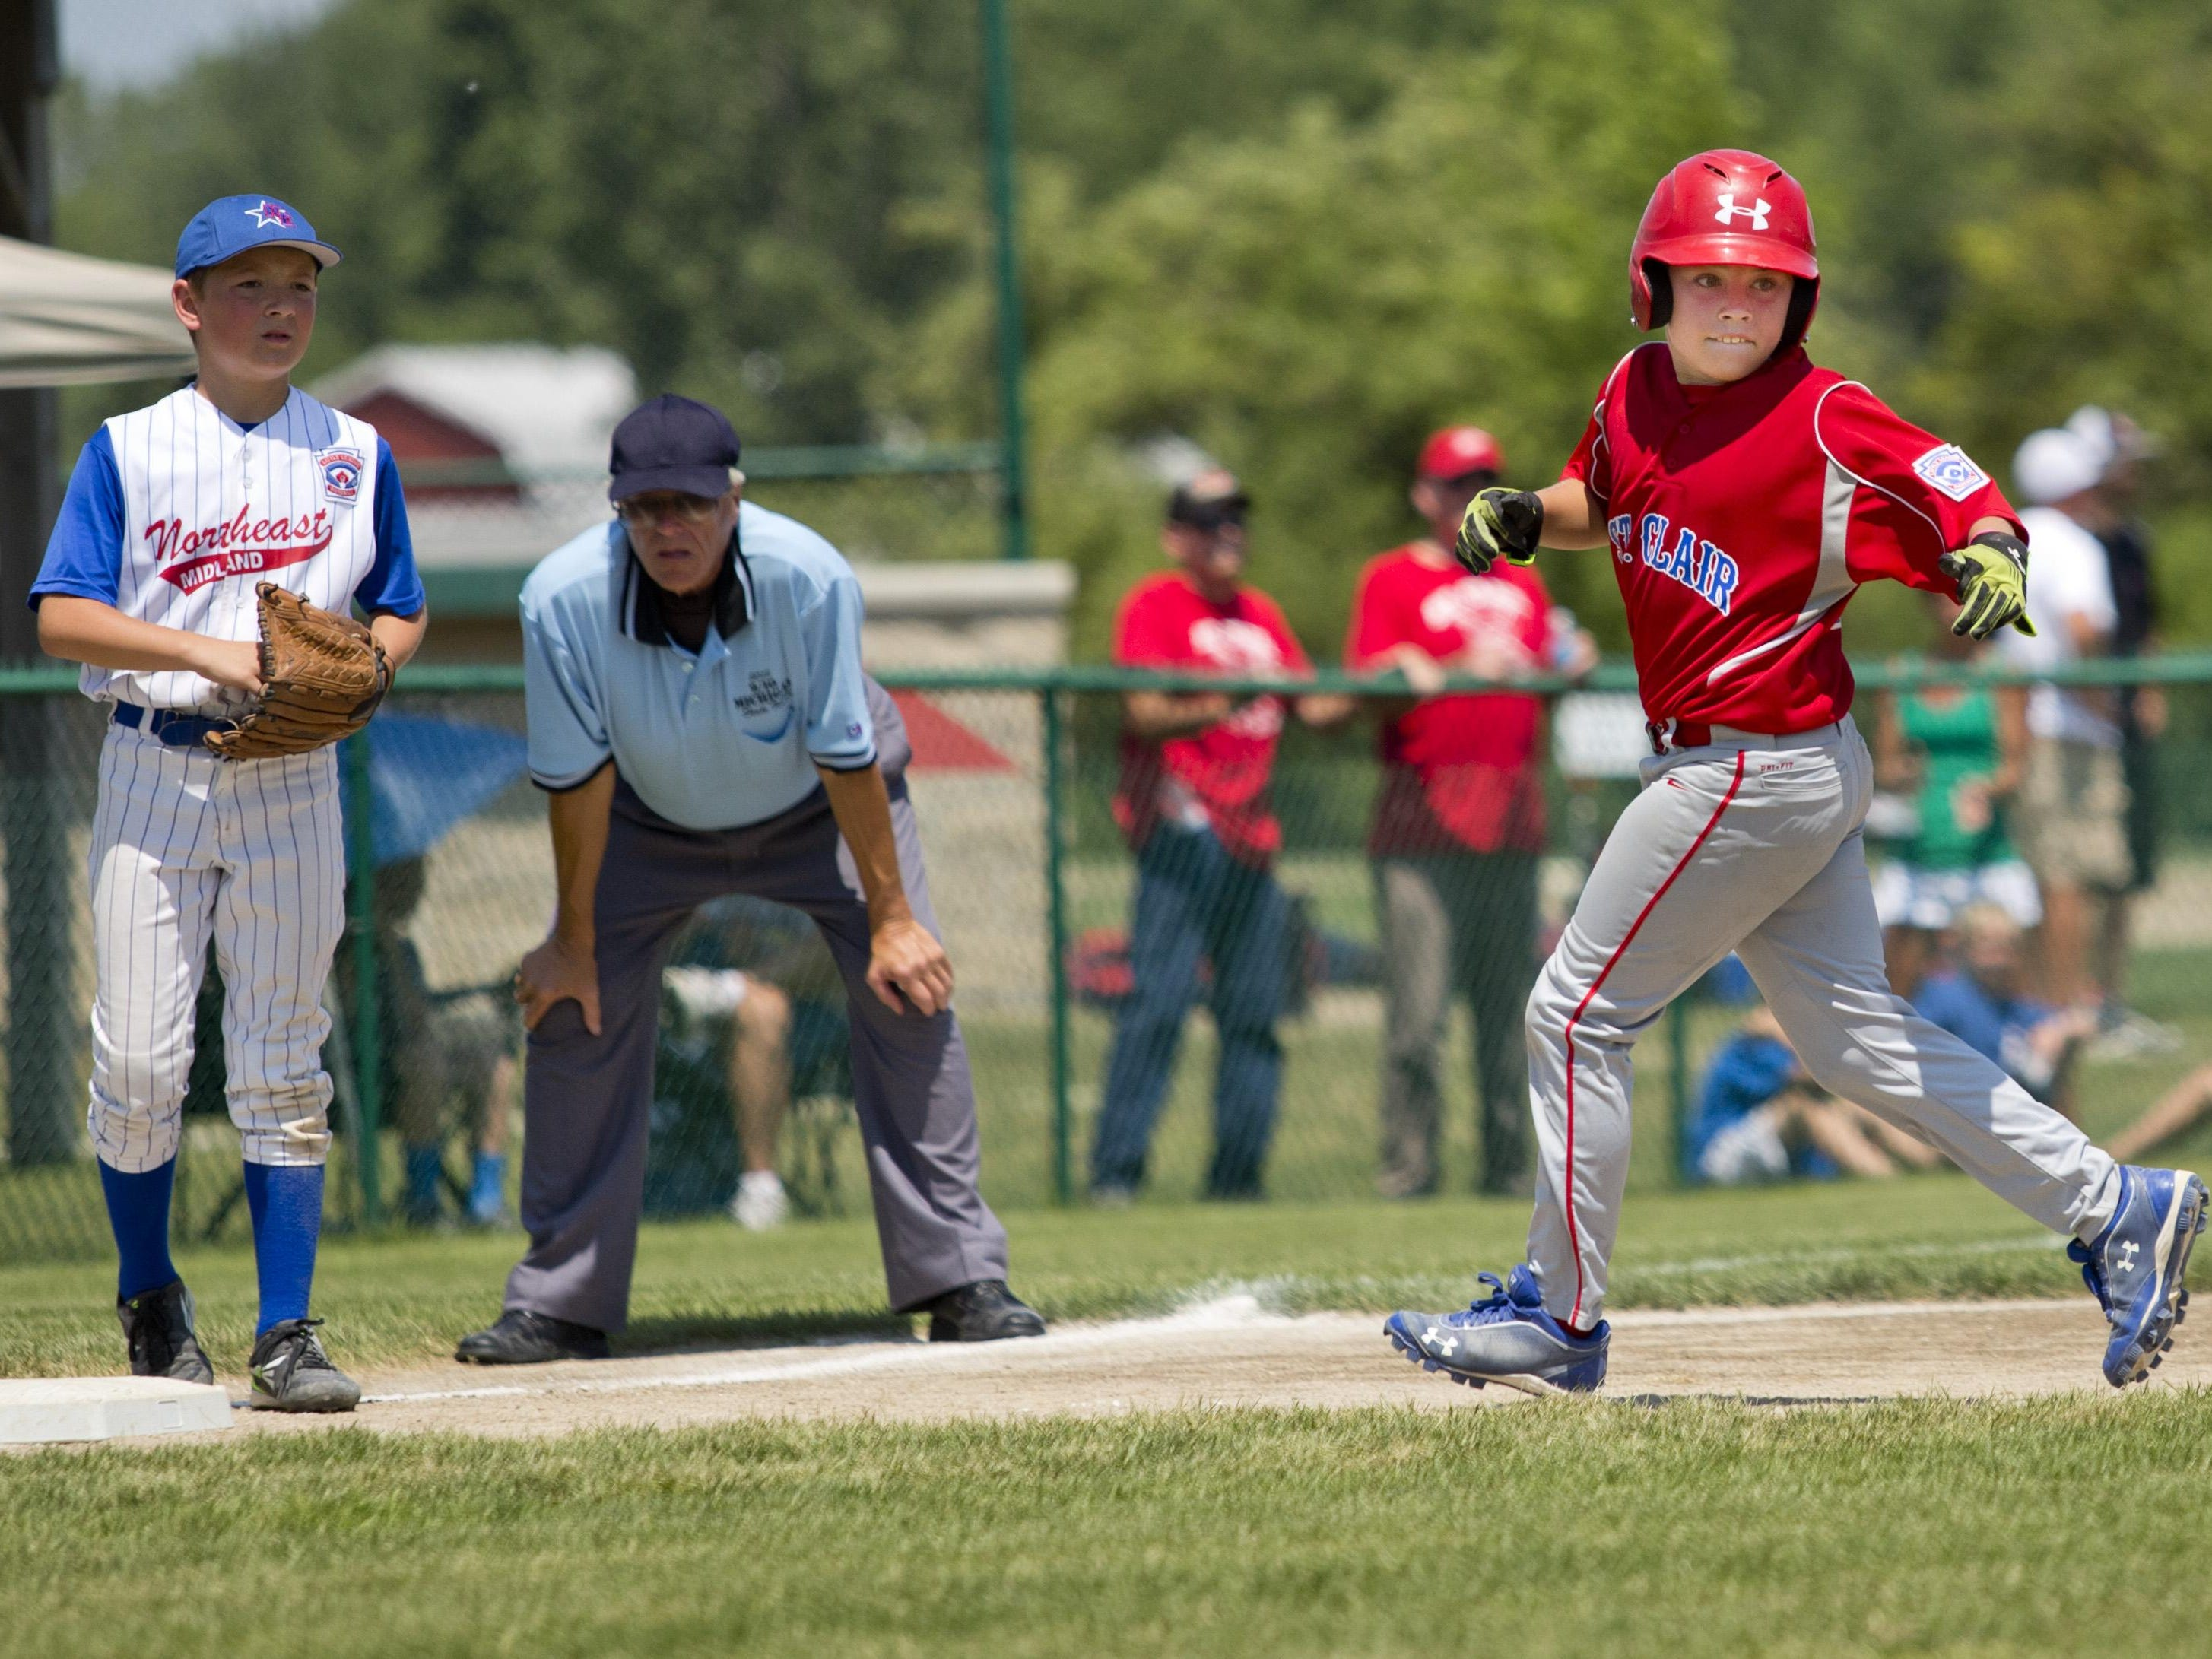 Caleb Achatz gets to third during a 10-and-under state semifinal baseball game Tuesday, July 28, 2015 in St. Clair.